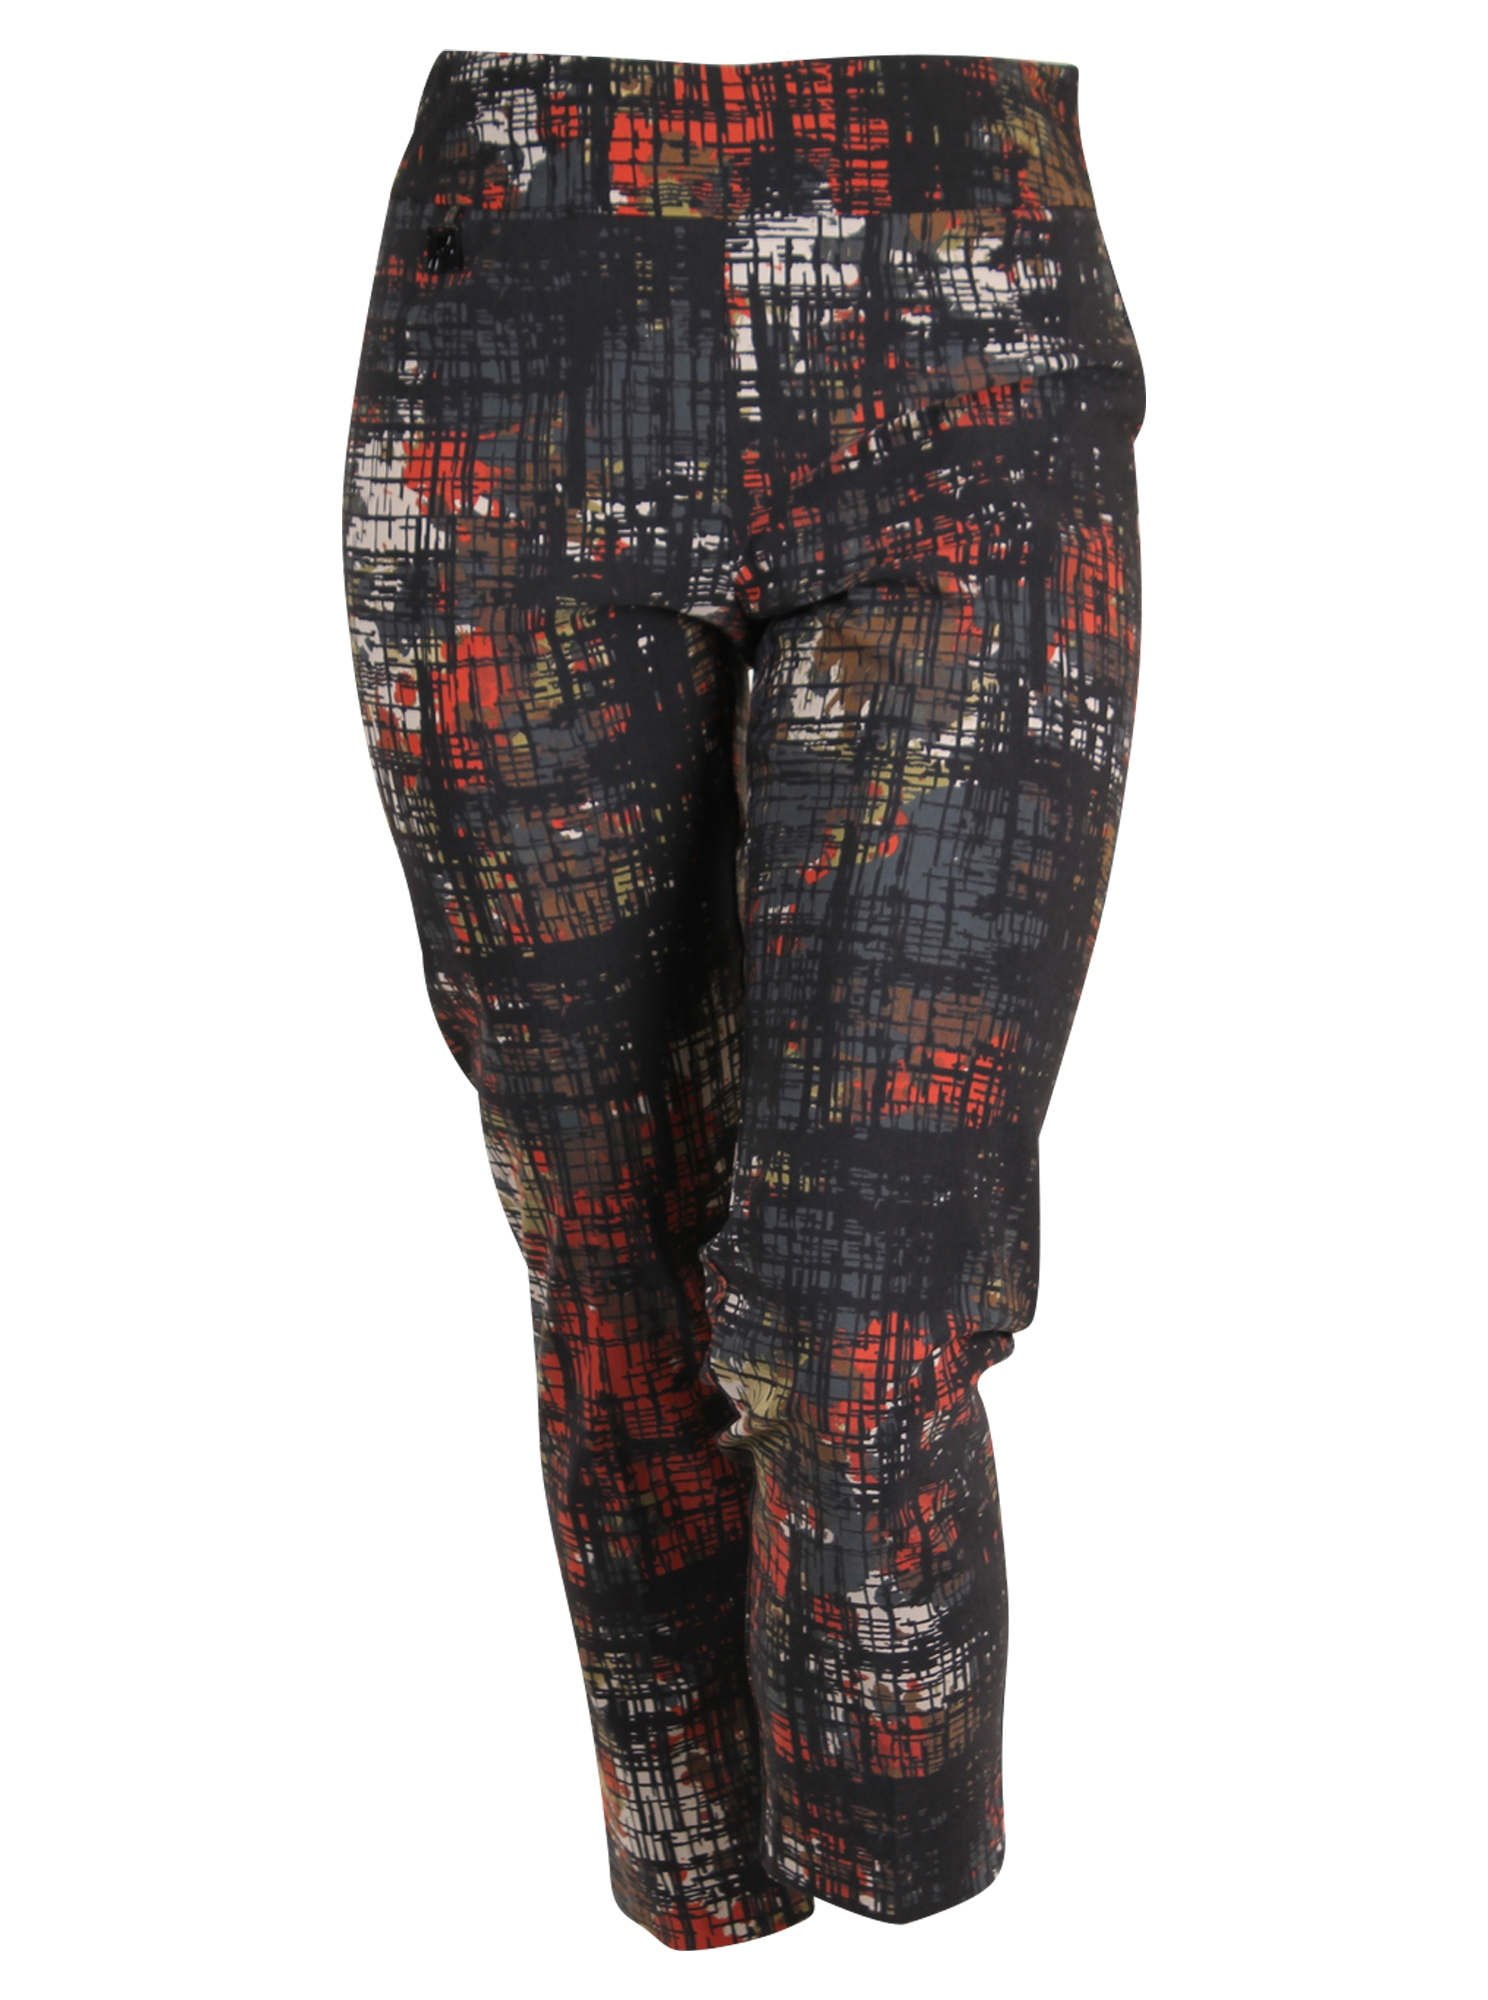 Joseph Ribkoff Abstract Print Straight Leg Pants- Style 173664 (22)